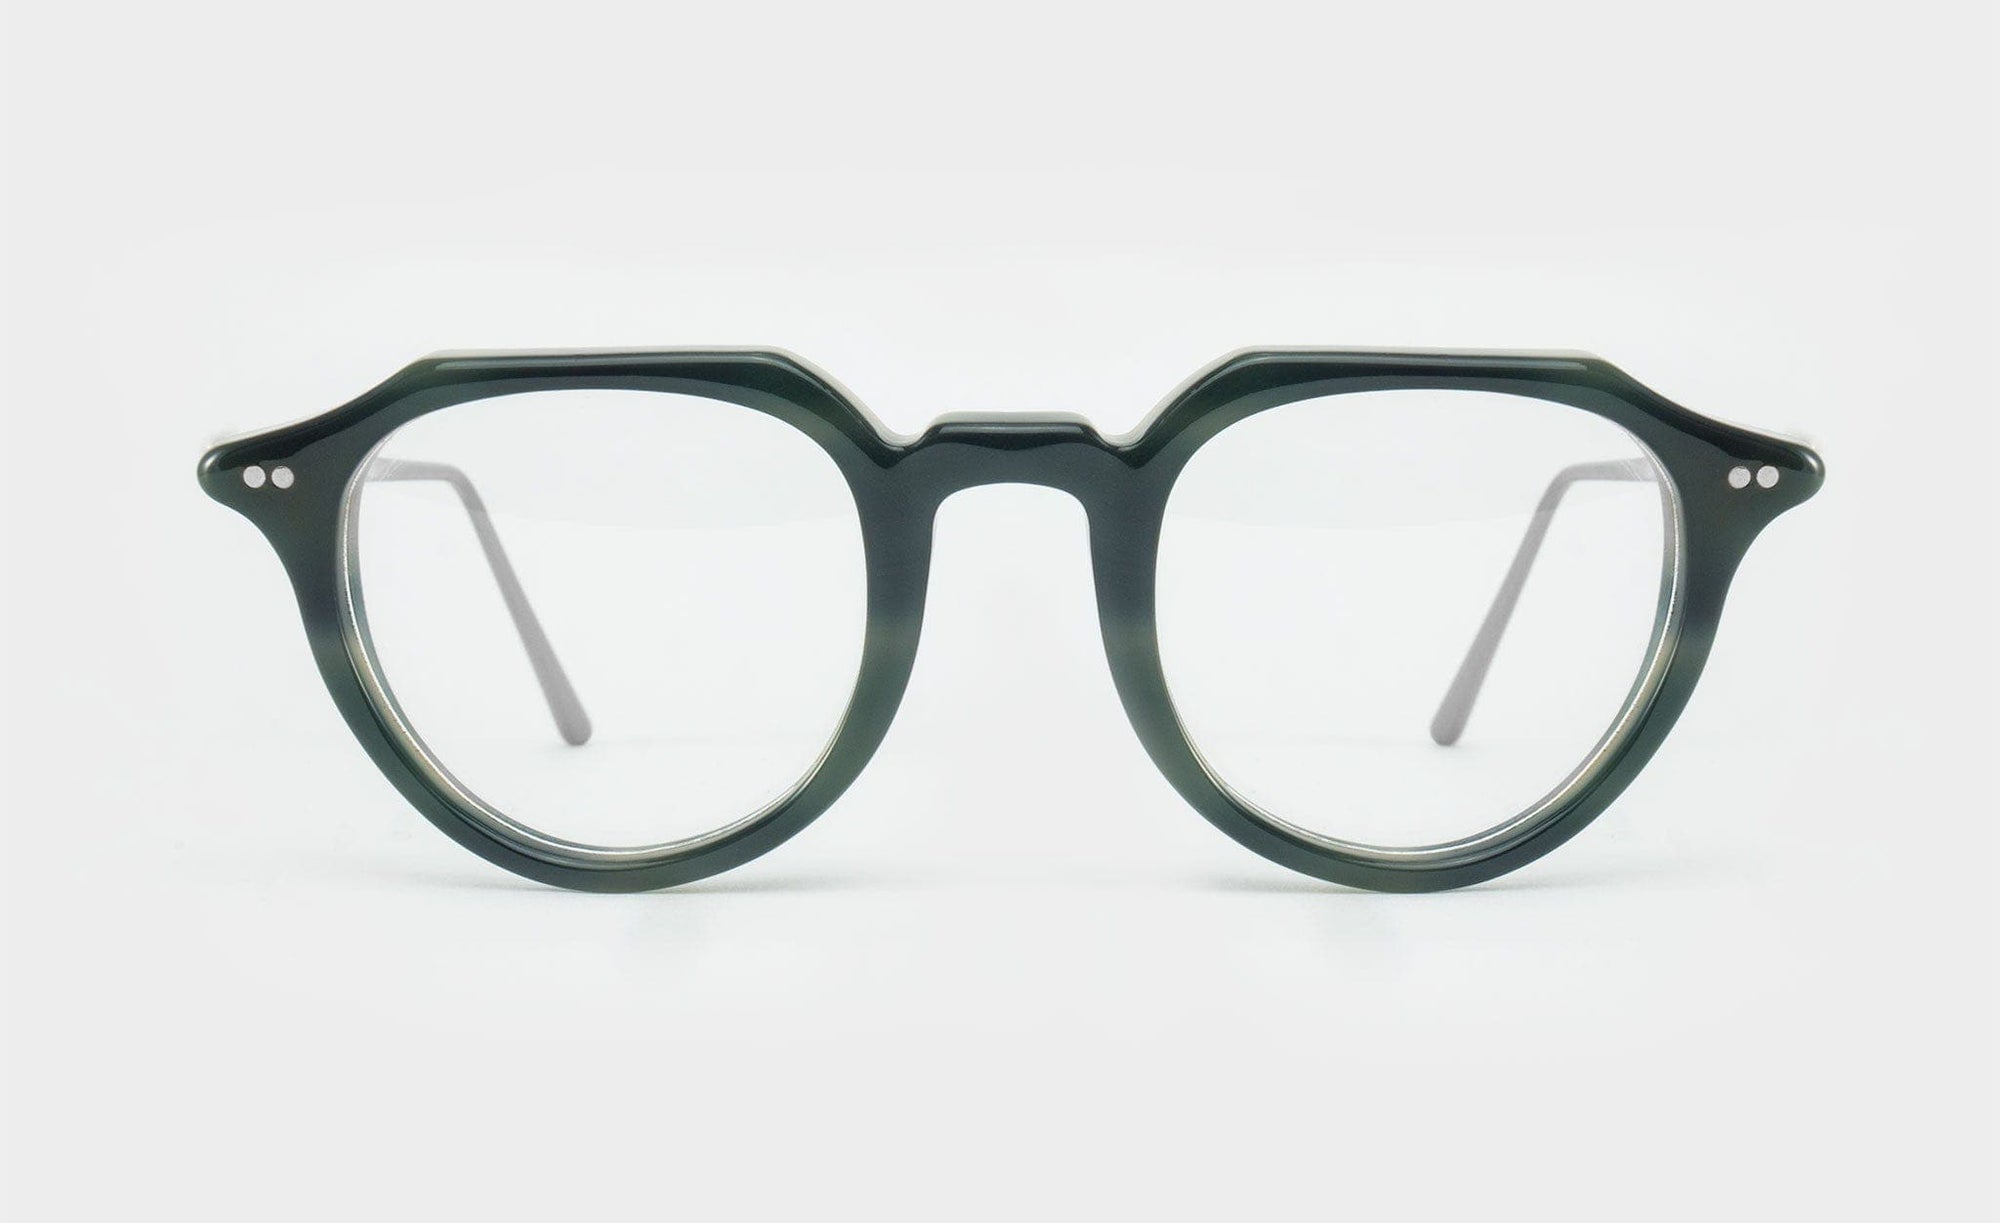 Optical glasses frame g loc